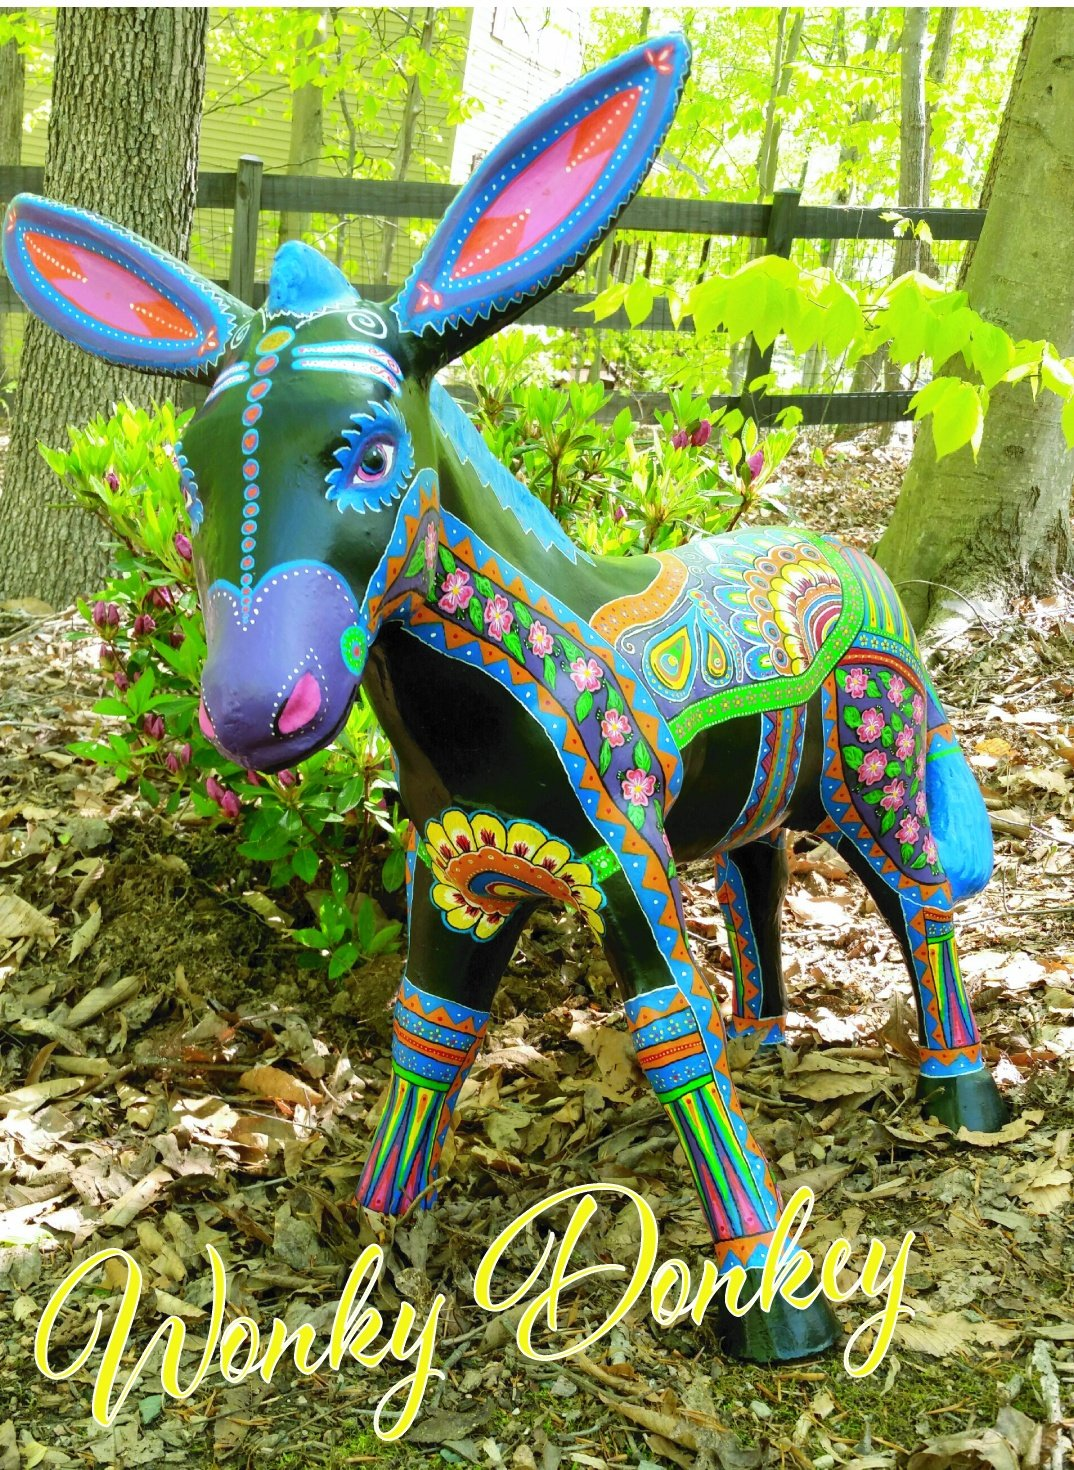 Wonky Donkey, painted by Cheryl Falkenburry, was auctioned to help raise money for Green Dogs Unleashed a rescue in Troy, VA.